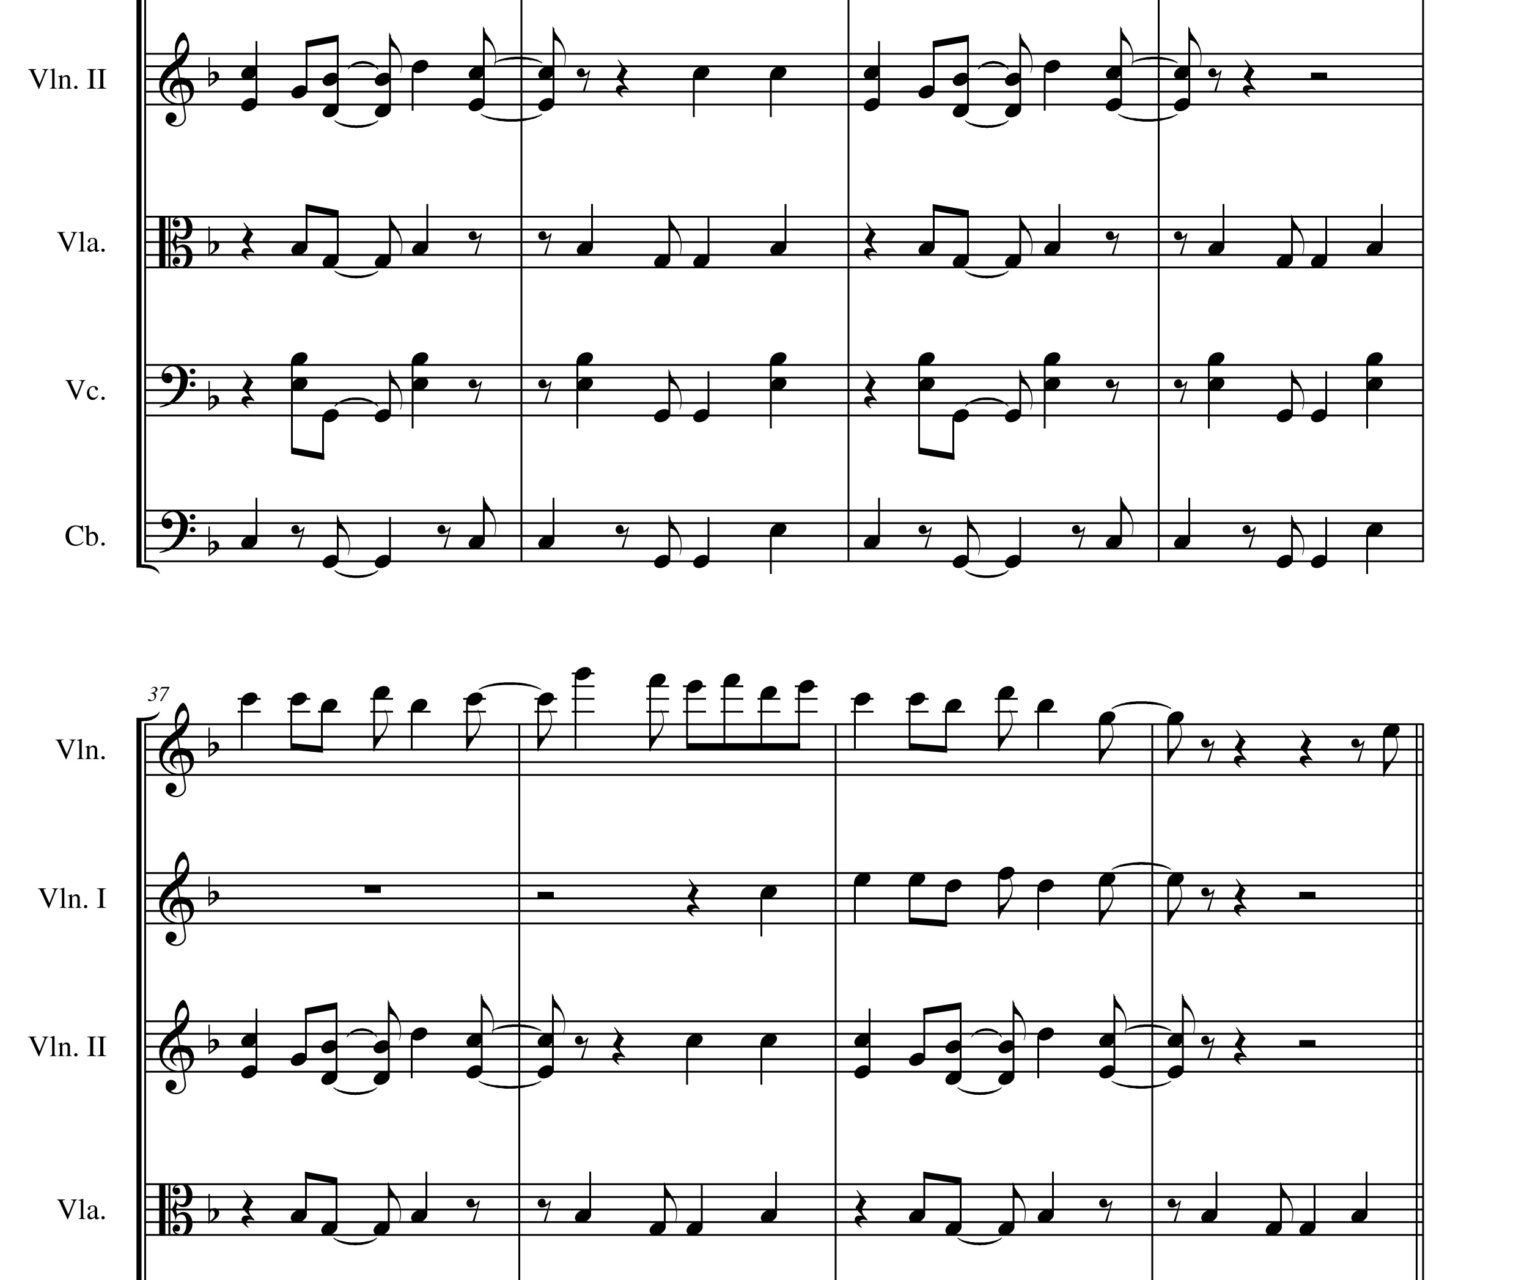 Tequila Sheet Music Ibovnathandedecker